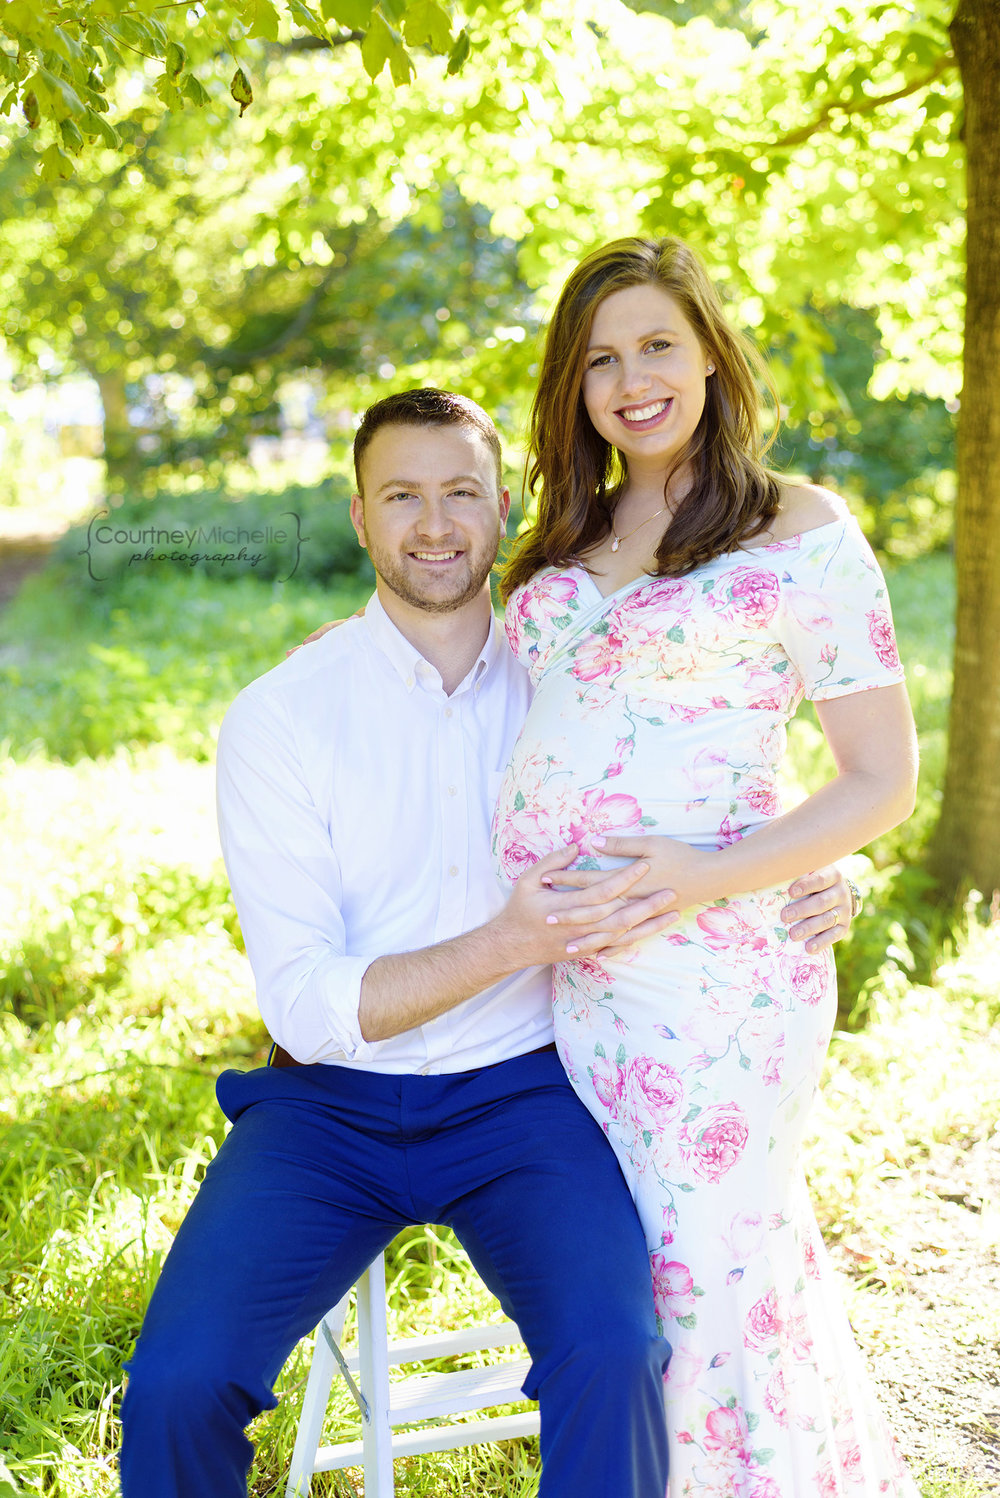 montrose-beach-chicago-maternity-session-courtney-laper©COPYRIGHTCMP-Maternity-2917.jpg